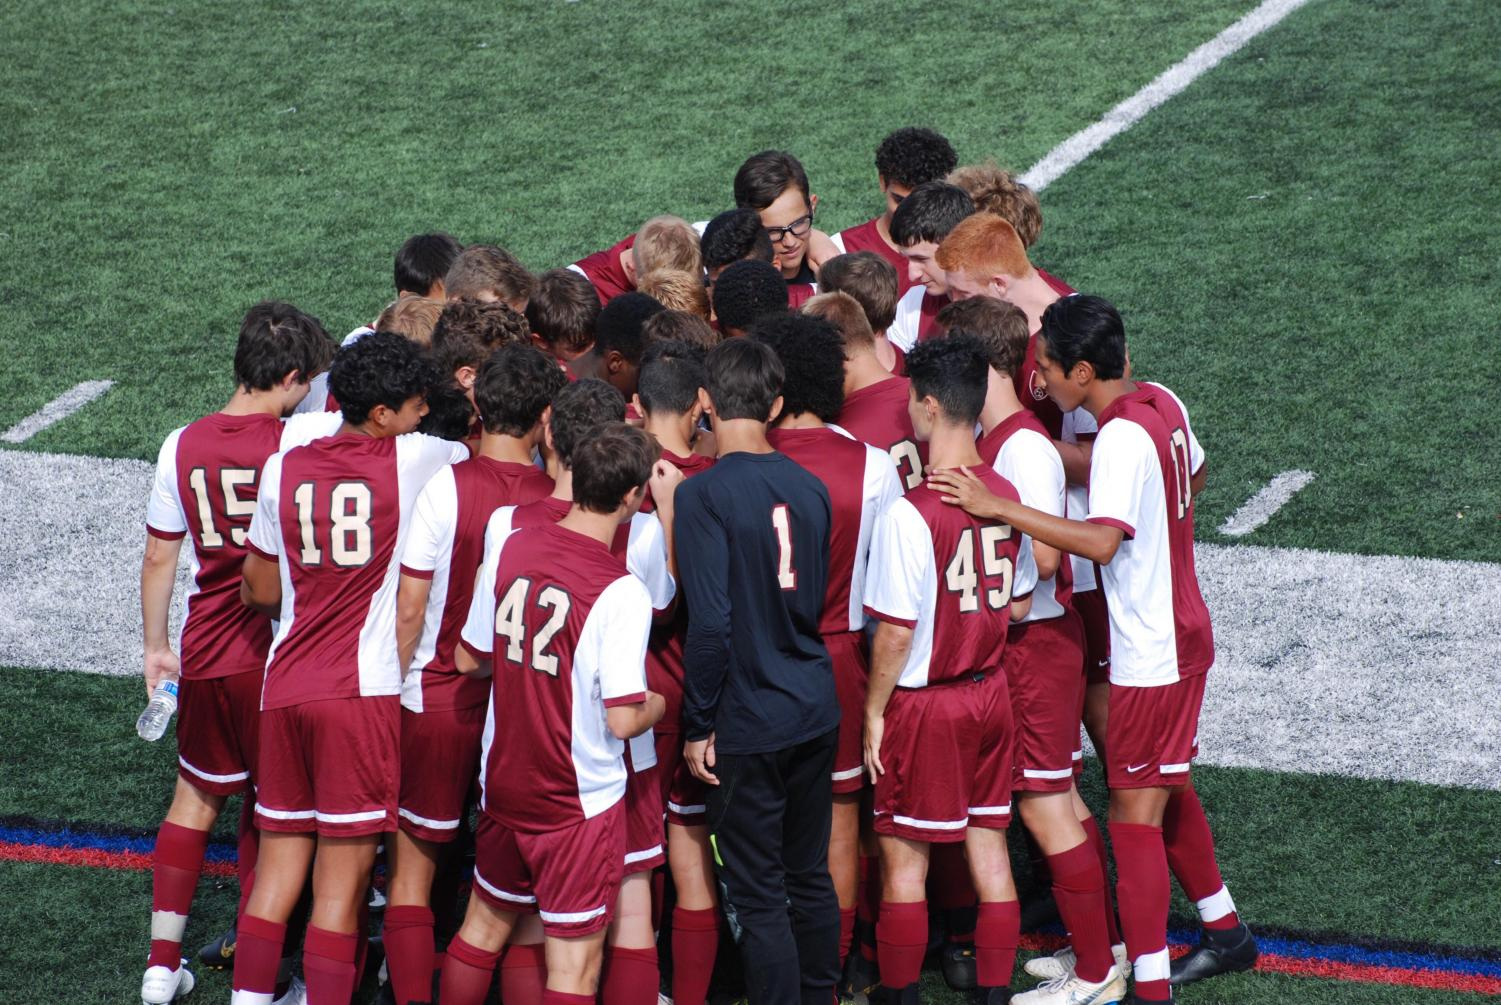 The boys soccer team takes instructions from head coach Eric Puma prior to a recent contest.